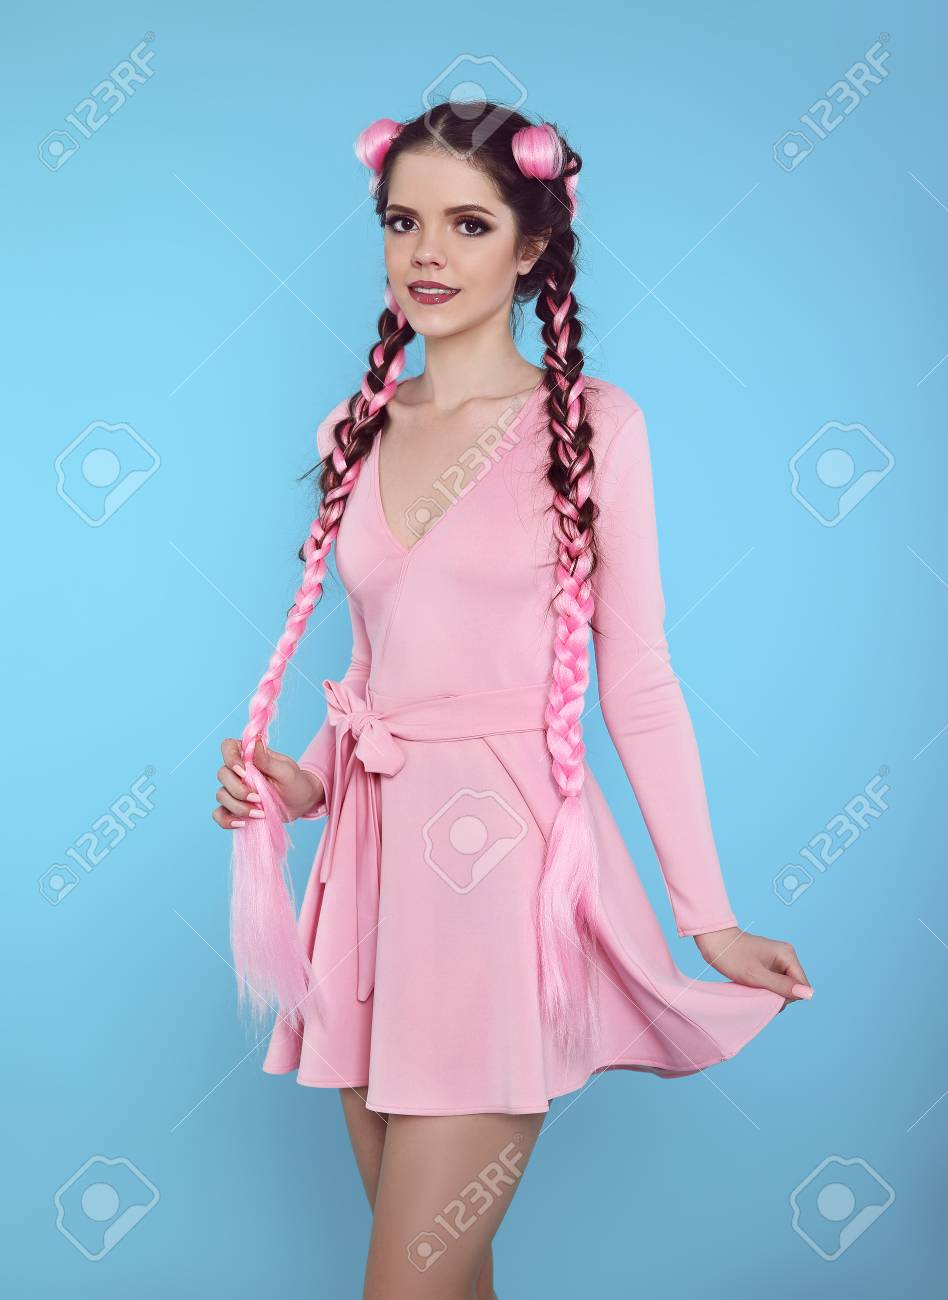 151098003ee3 ... dress isolated on blue studio background. Pretty teen girl with two  french braids from pink kanekalon